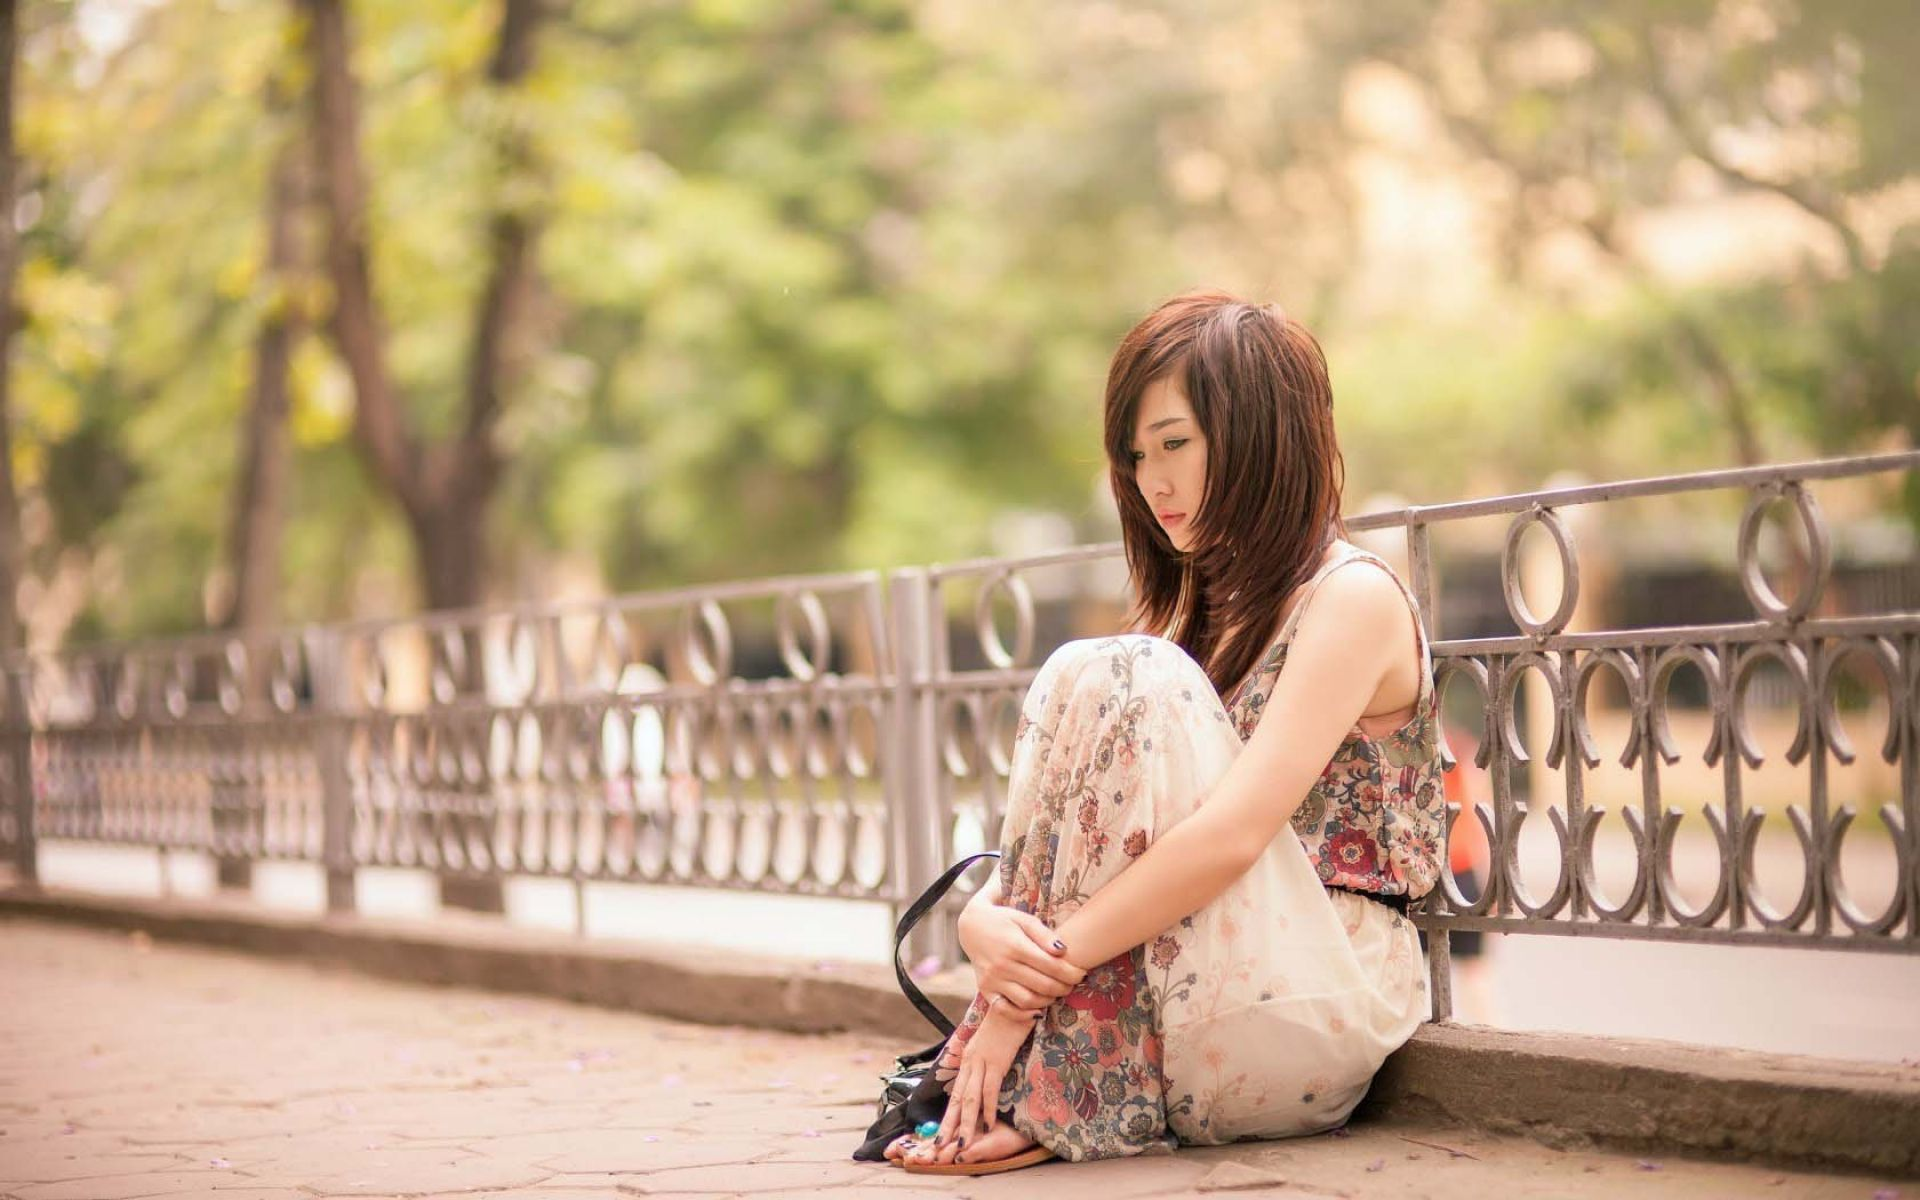 very sad wallpapers of girls - photo #41